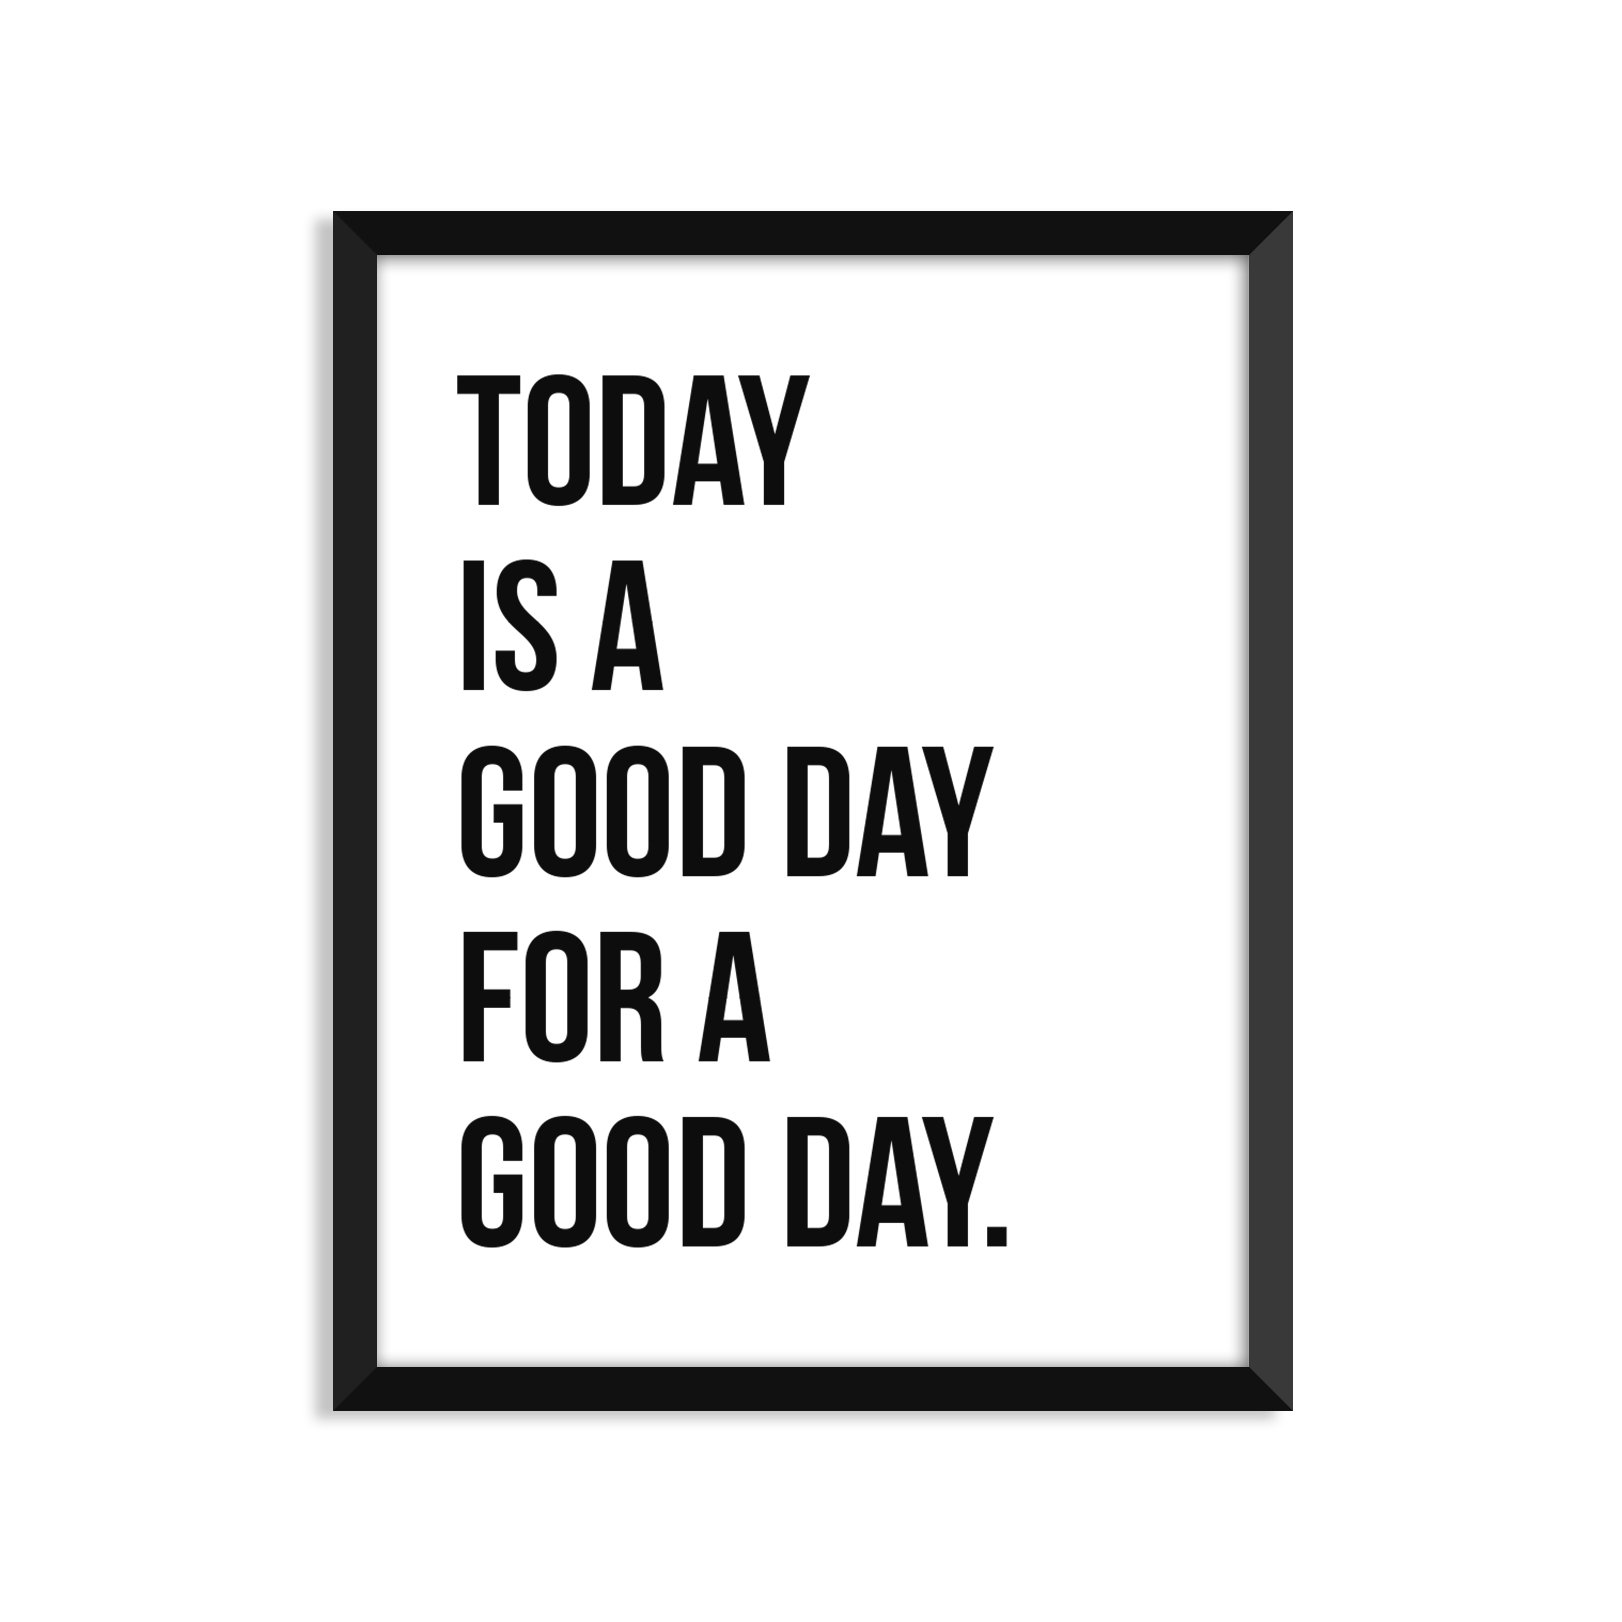 Today Is A Good Day For A Good Day, Inspirational Quote, Minimalist Poster, Home Decor, College Dorm Room Decorations, Wall Art